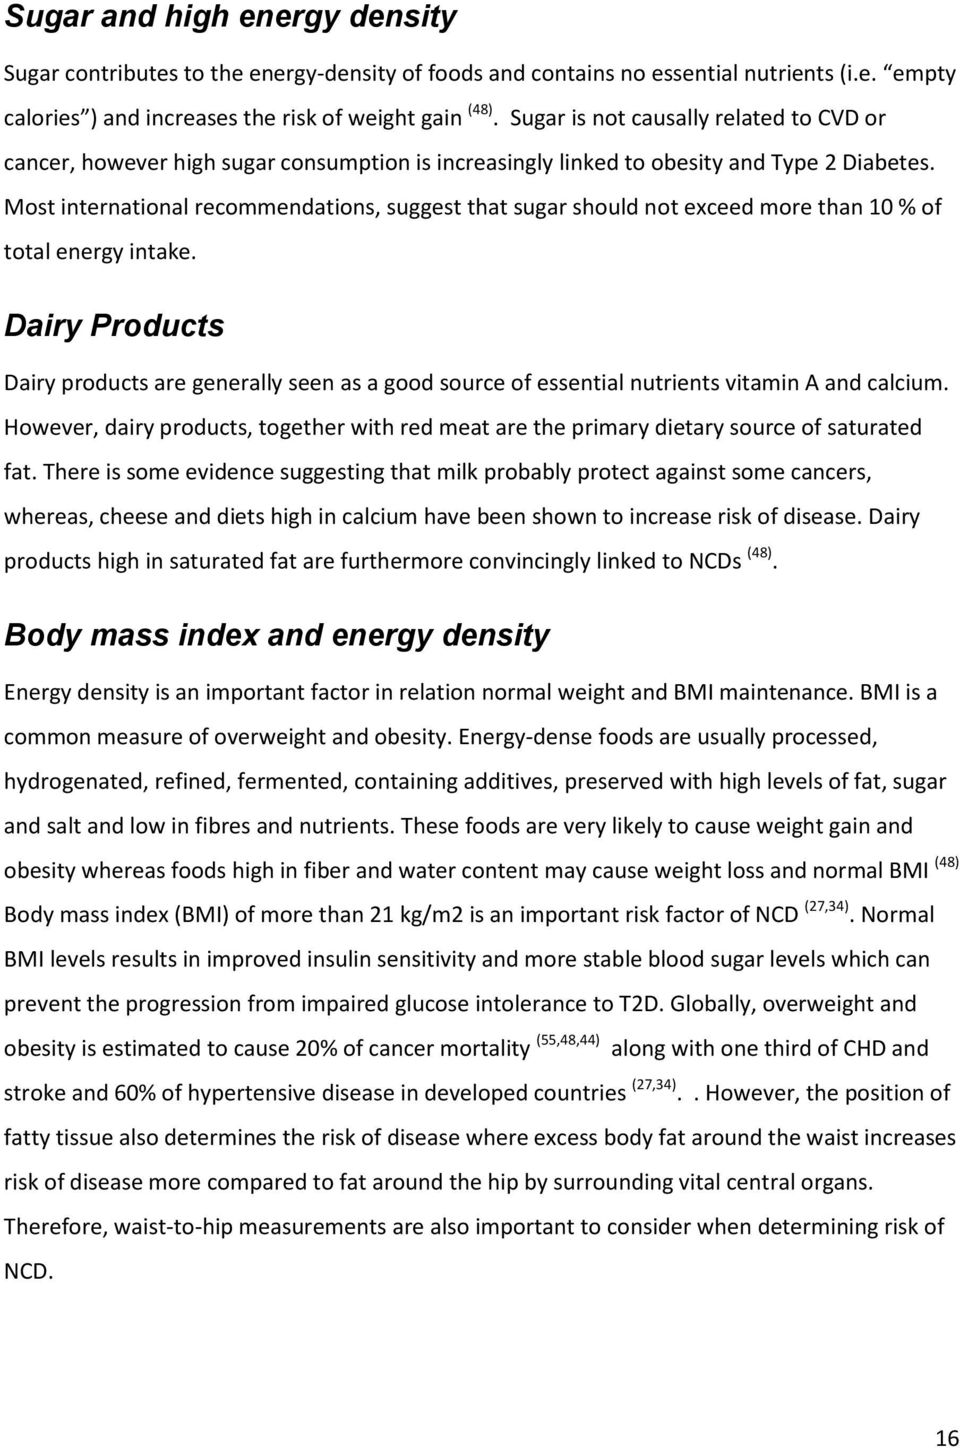 Most international recommendations, suggest that sugar should not exceed more than 10 % of total energy intake.